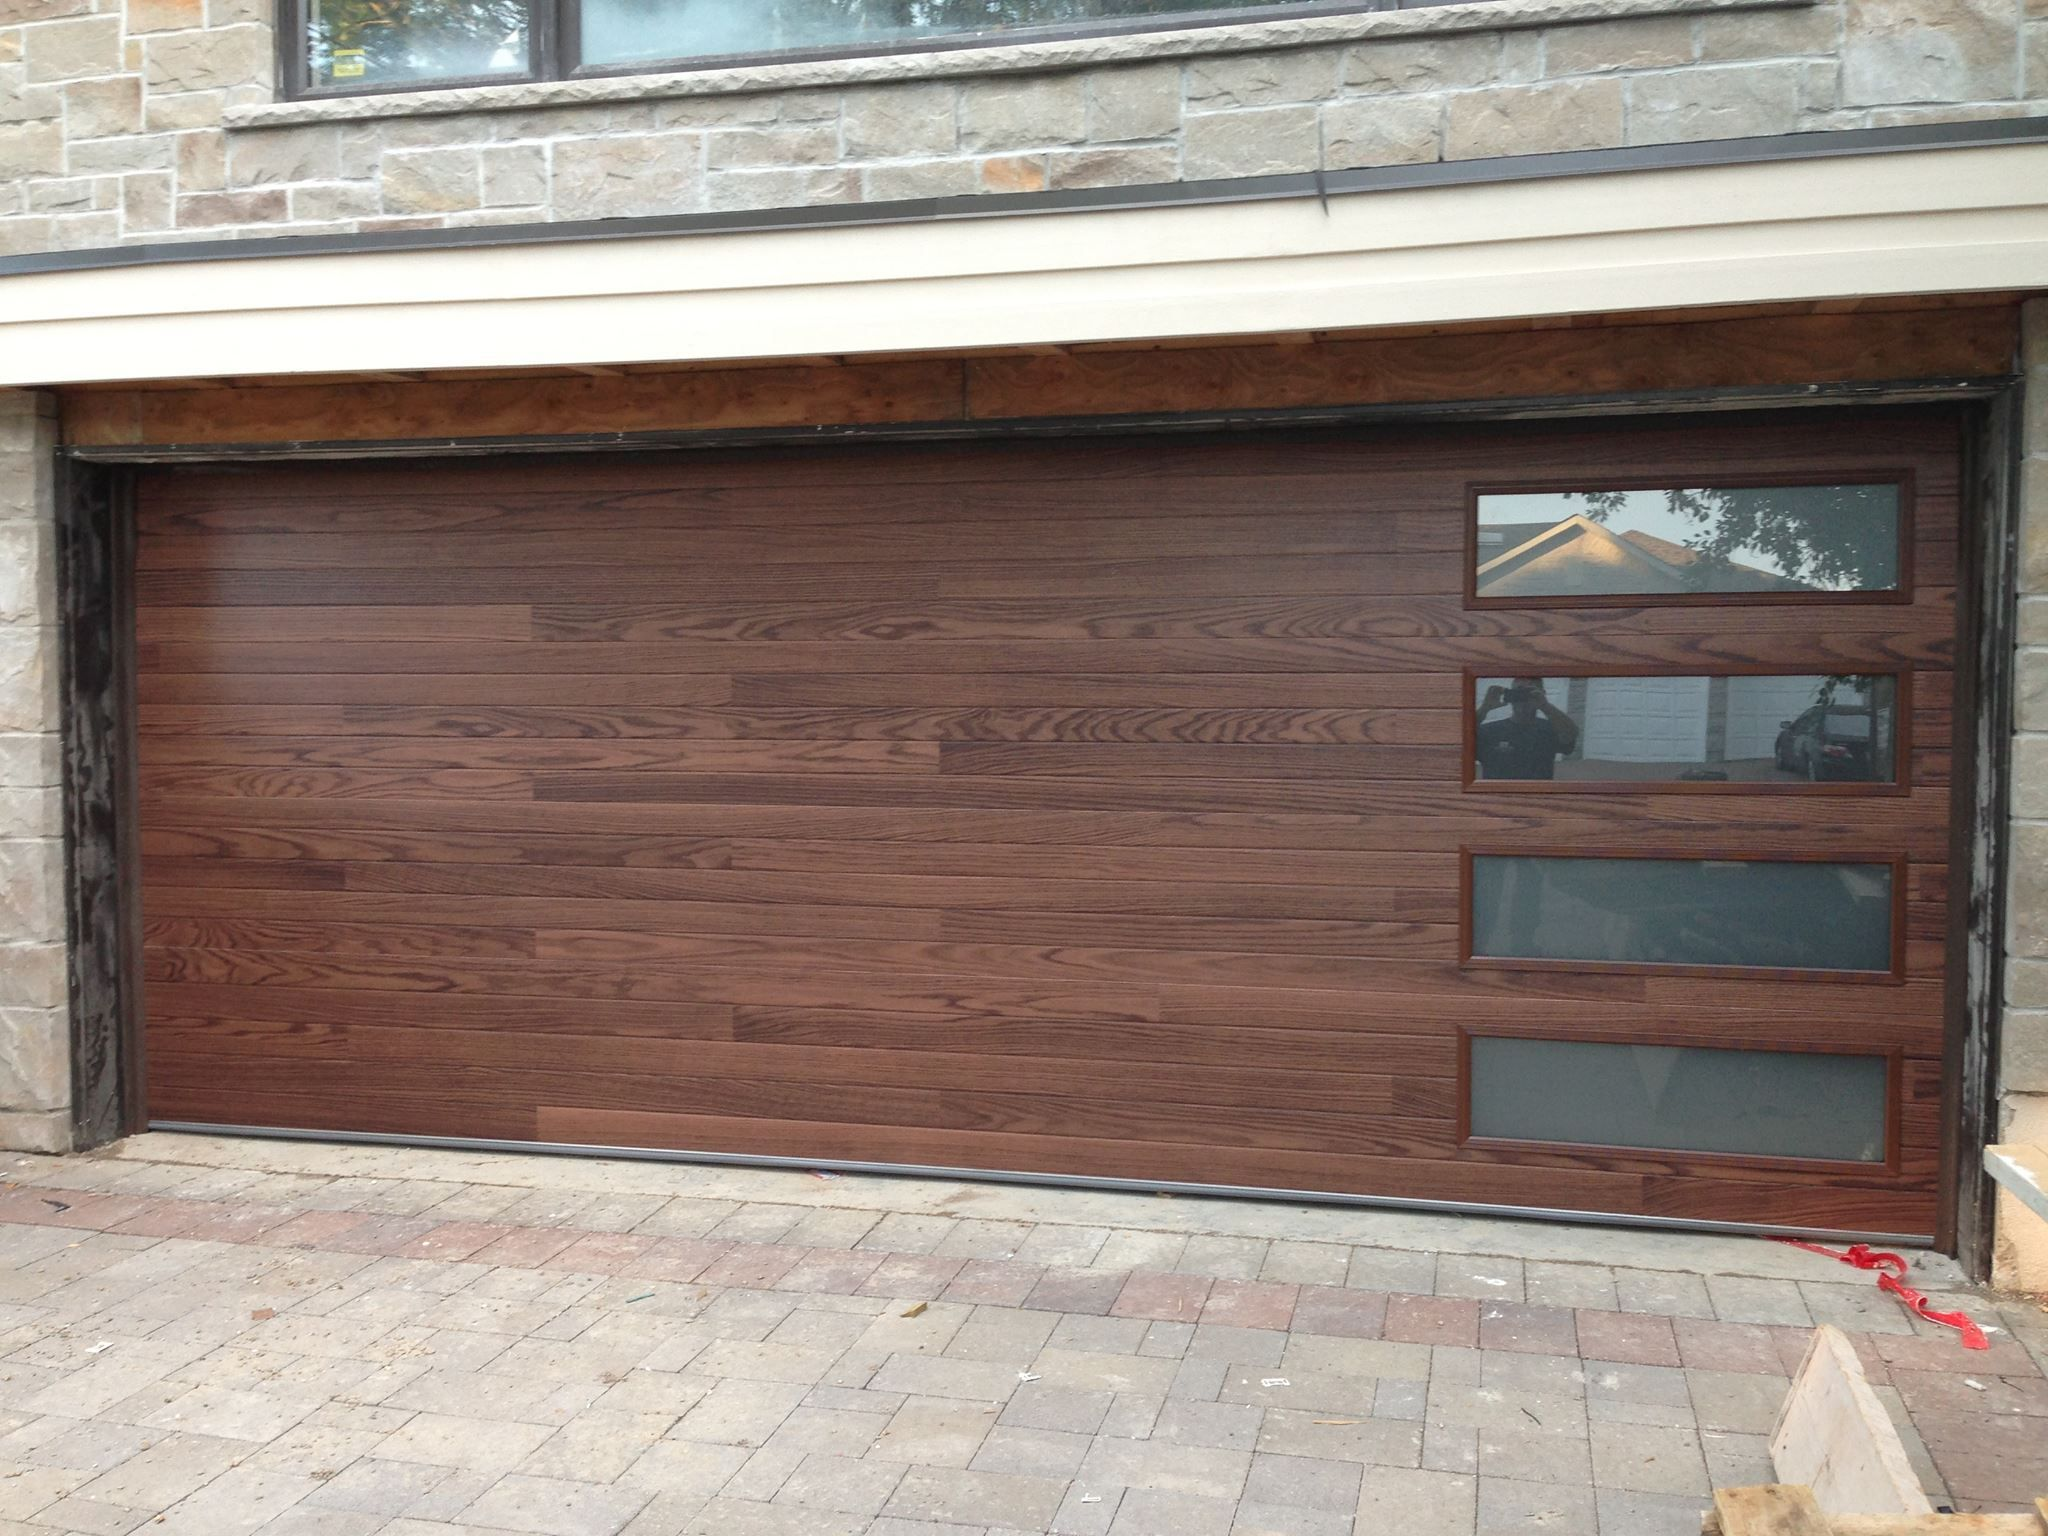 Transform Your Home Or Business With The Warmth And Appeal Of An Accents Planks Garage Door 34 Best Garage Door Design Modern Garage Doors Garage Door Styles